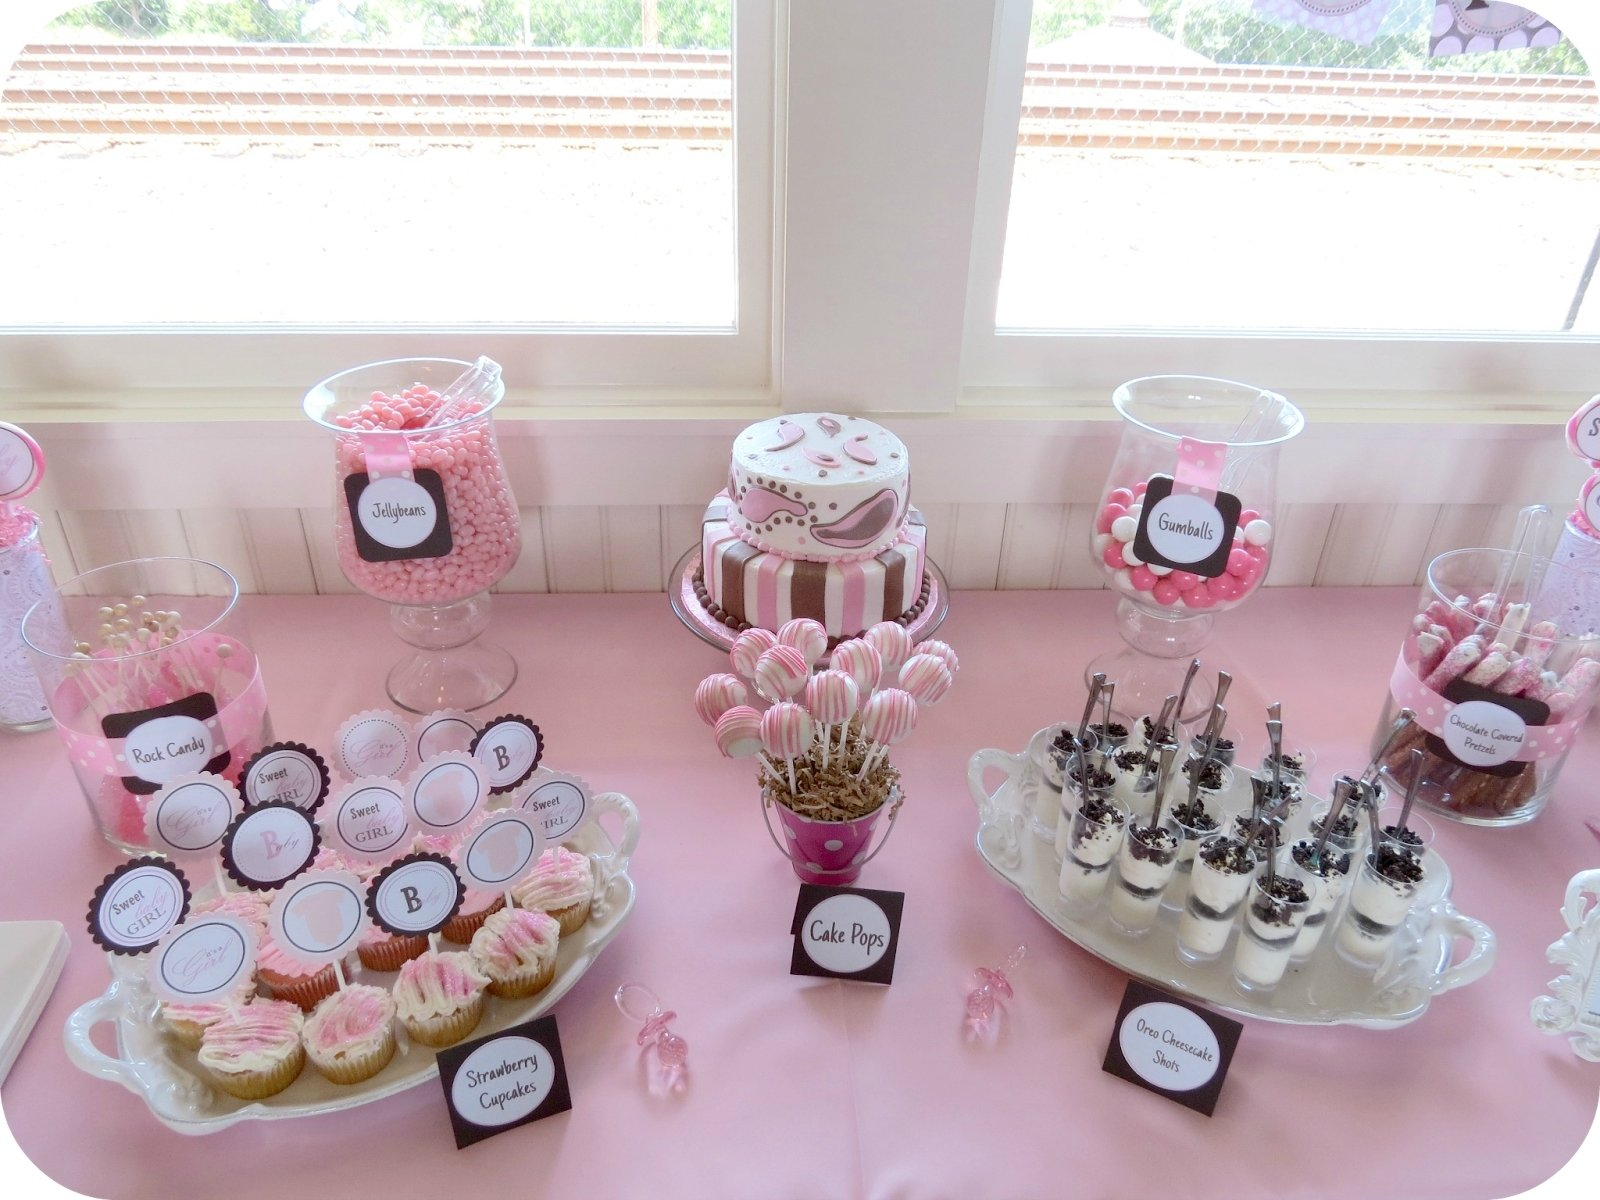 10 Unique Baby Shower Dessert Table Ideas baby girl shower dessert table girls bday party pinterest dessert 2020